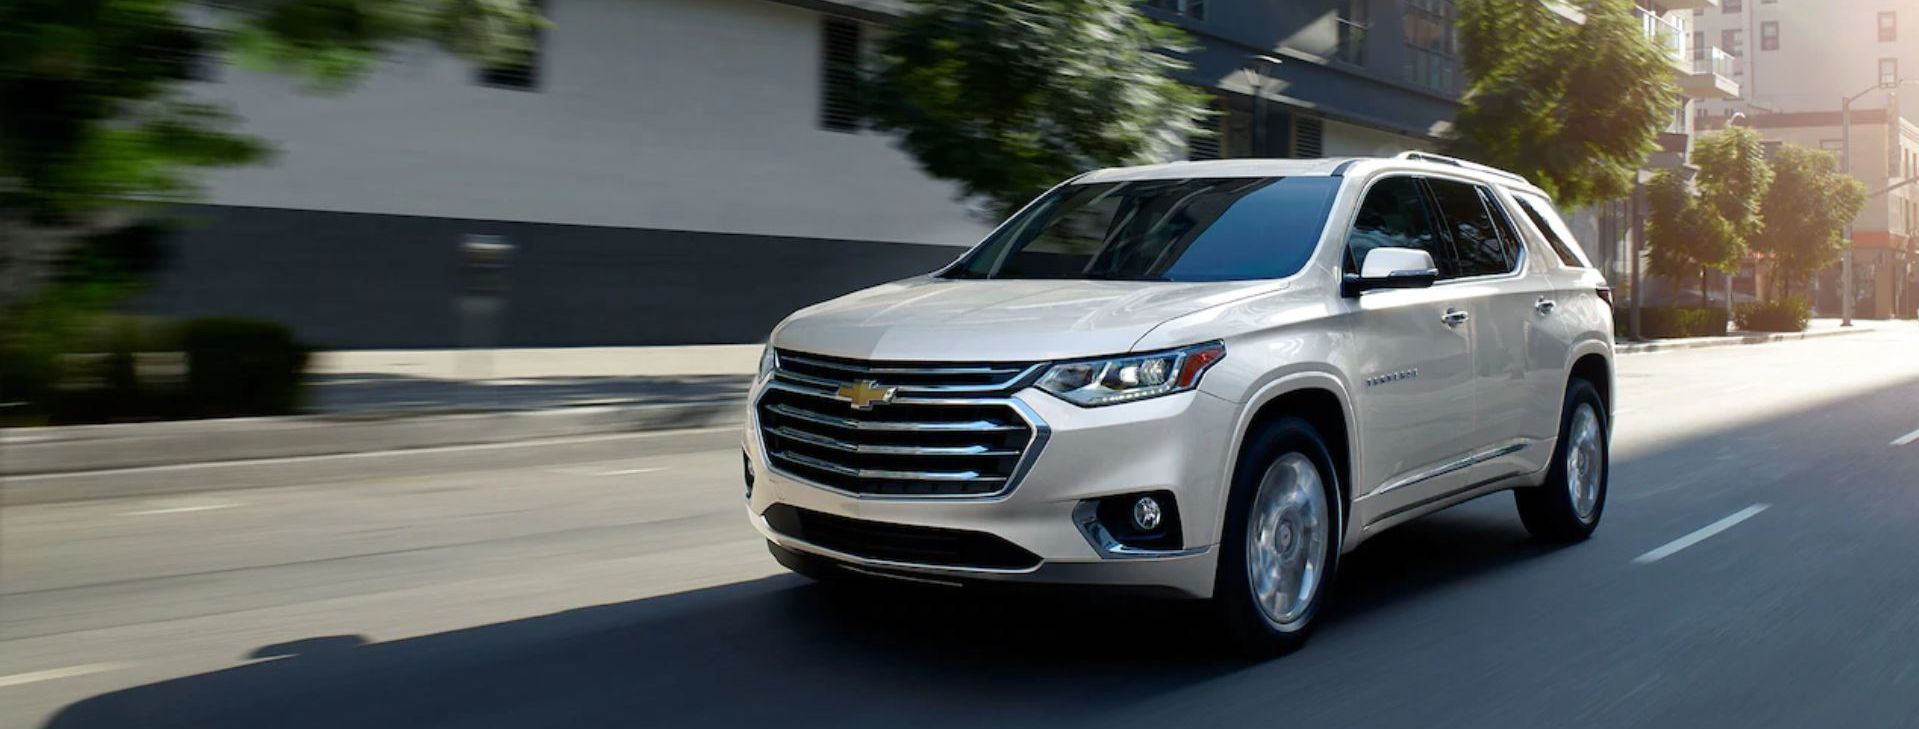 2019 Chevrolet Traverse for Sale near Carol Stream, IL